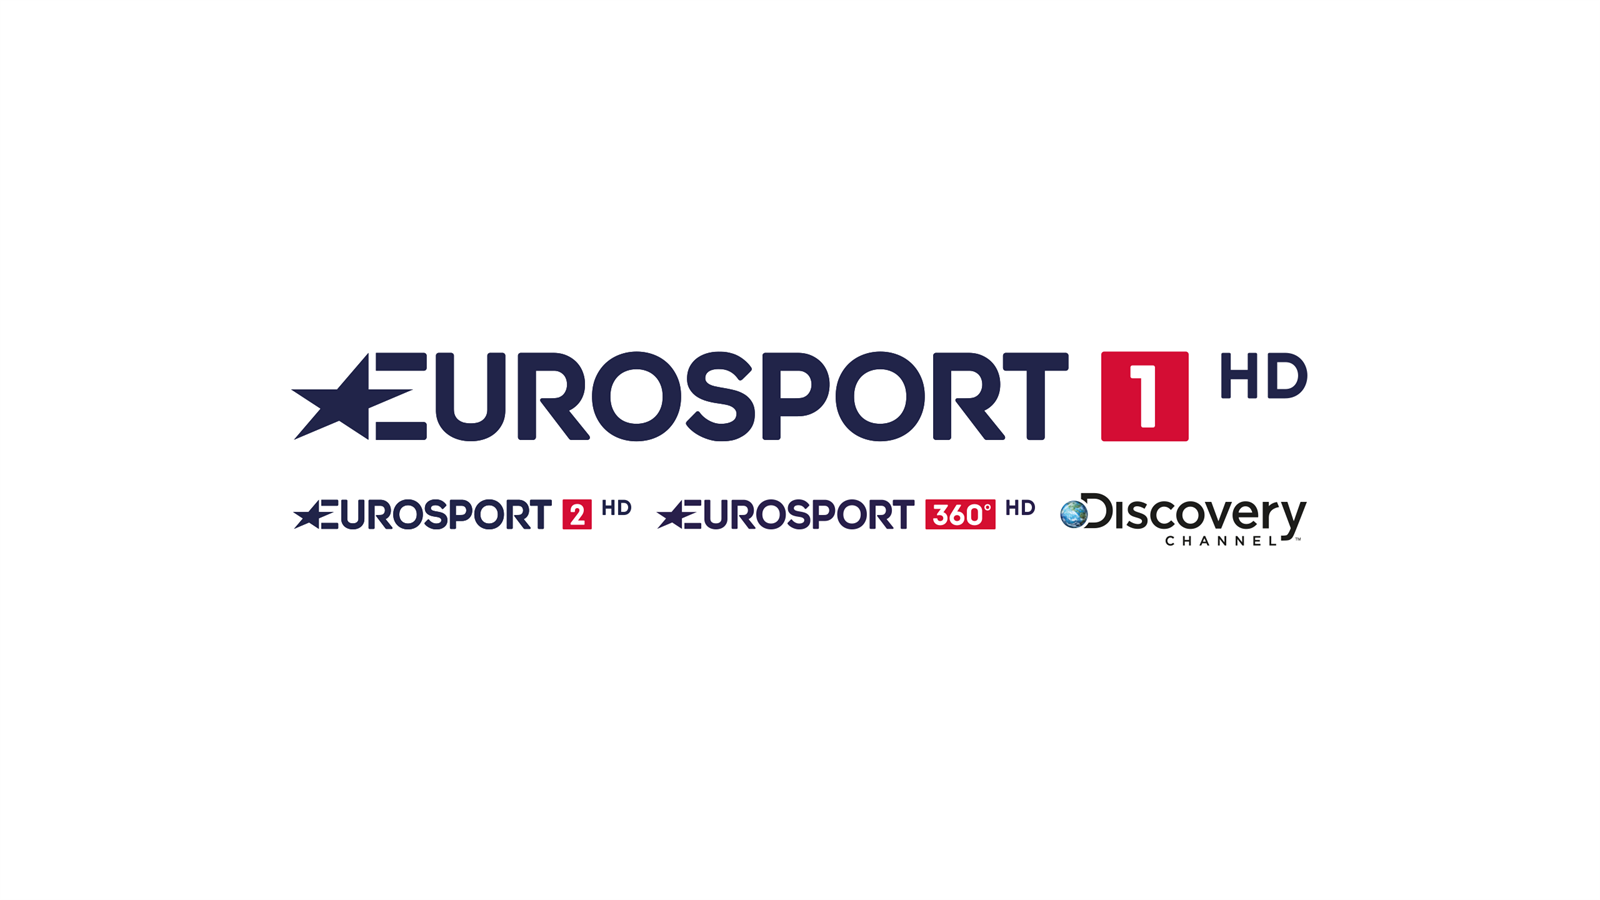 Livestream Lakeside 2020: Eurosport 1